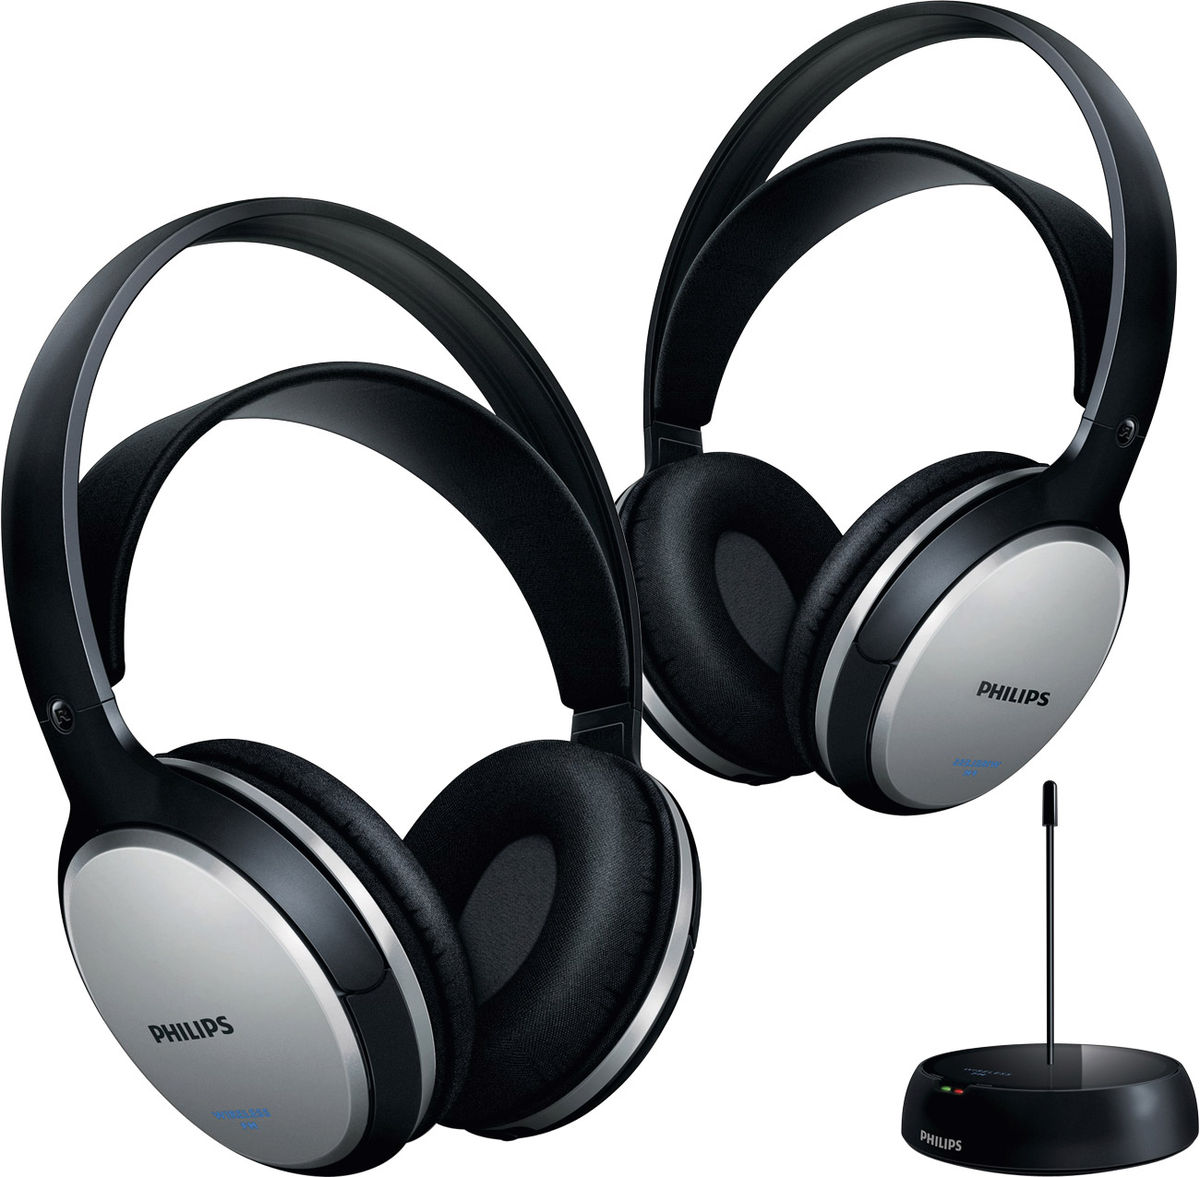 philips shc 5102 casques sans fil son vid. Black Bedroom Furniture Sets. Home Design Ideas